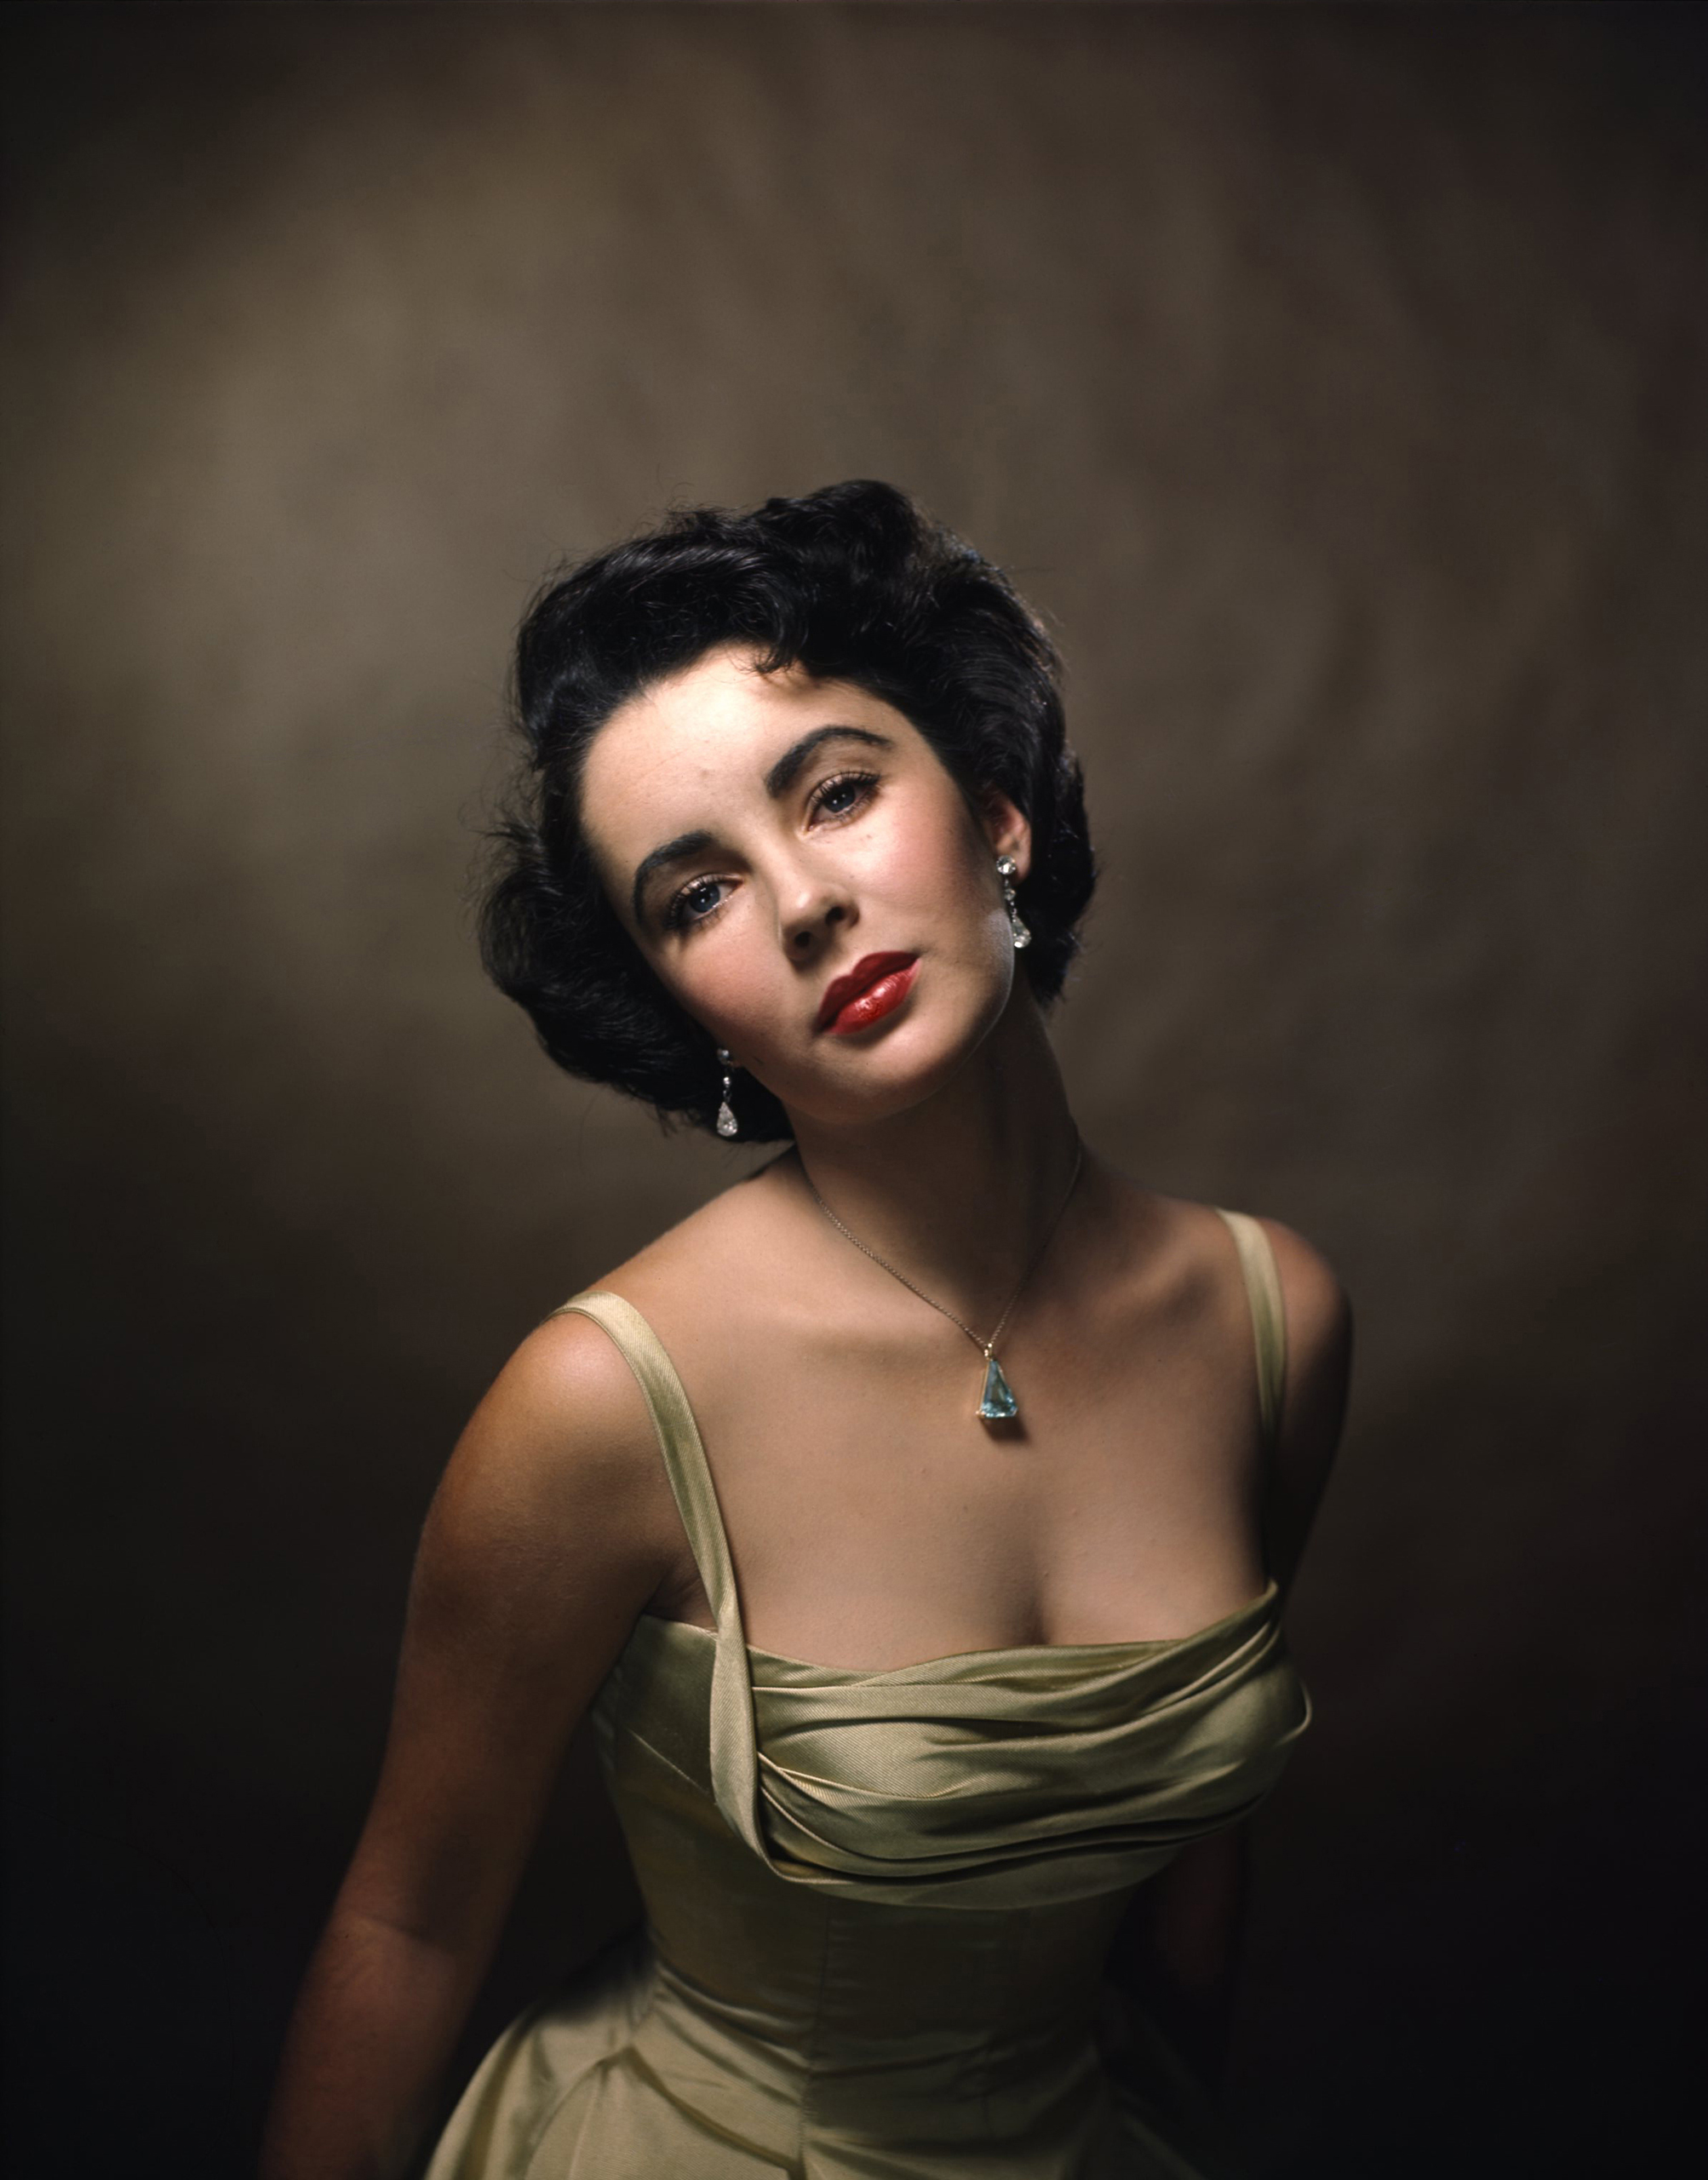 Color portrait of Elizabeth Taylor, Oct. 1948.